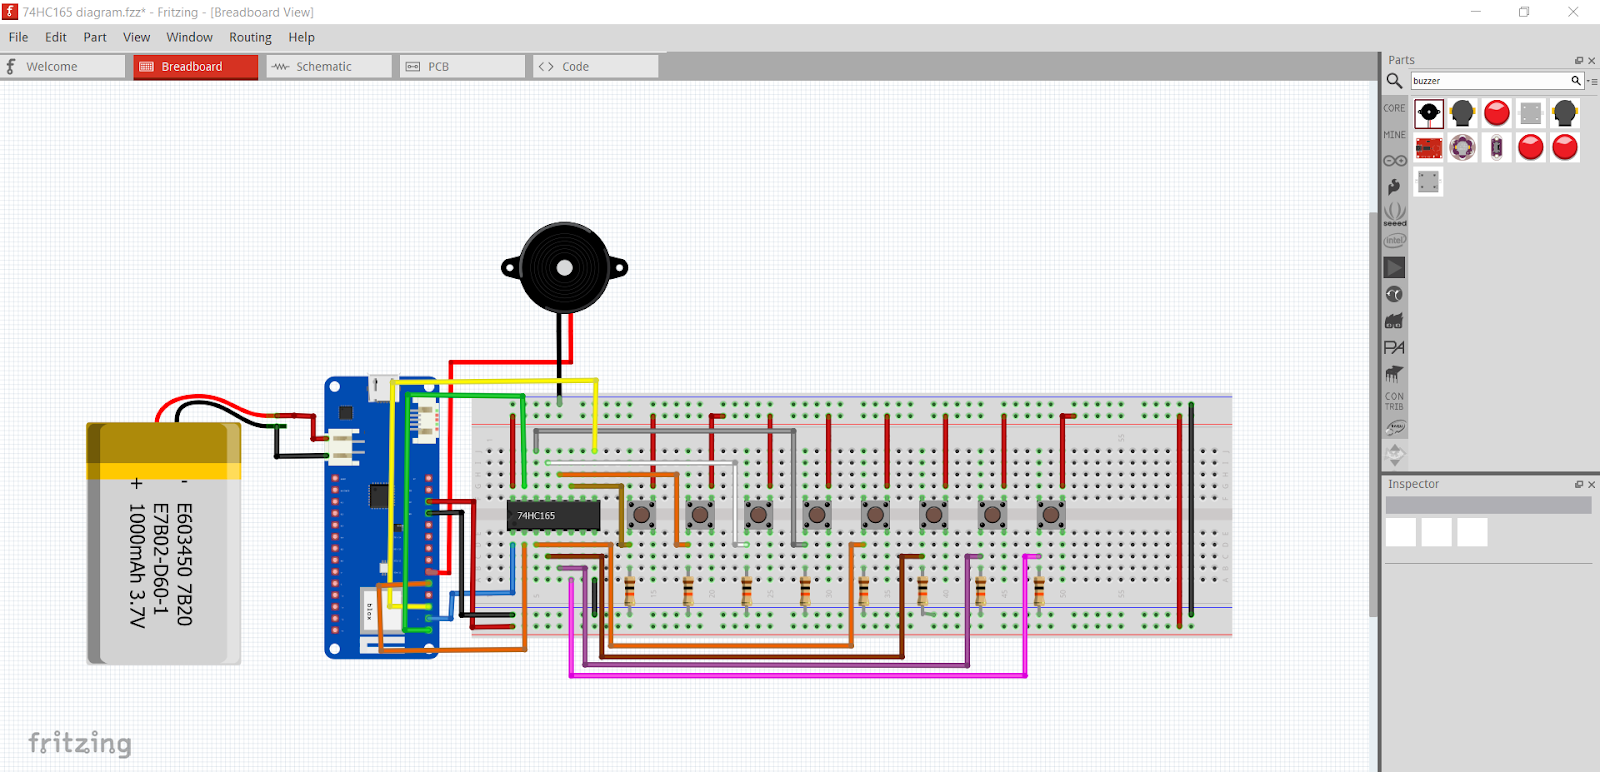 https://hackster.imgix.net/uploads/attachments/1181810/sujata_circuit_FCKrHpYtZY.png